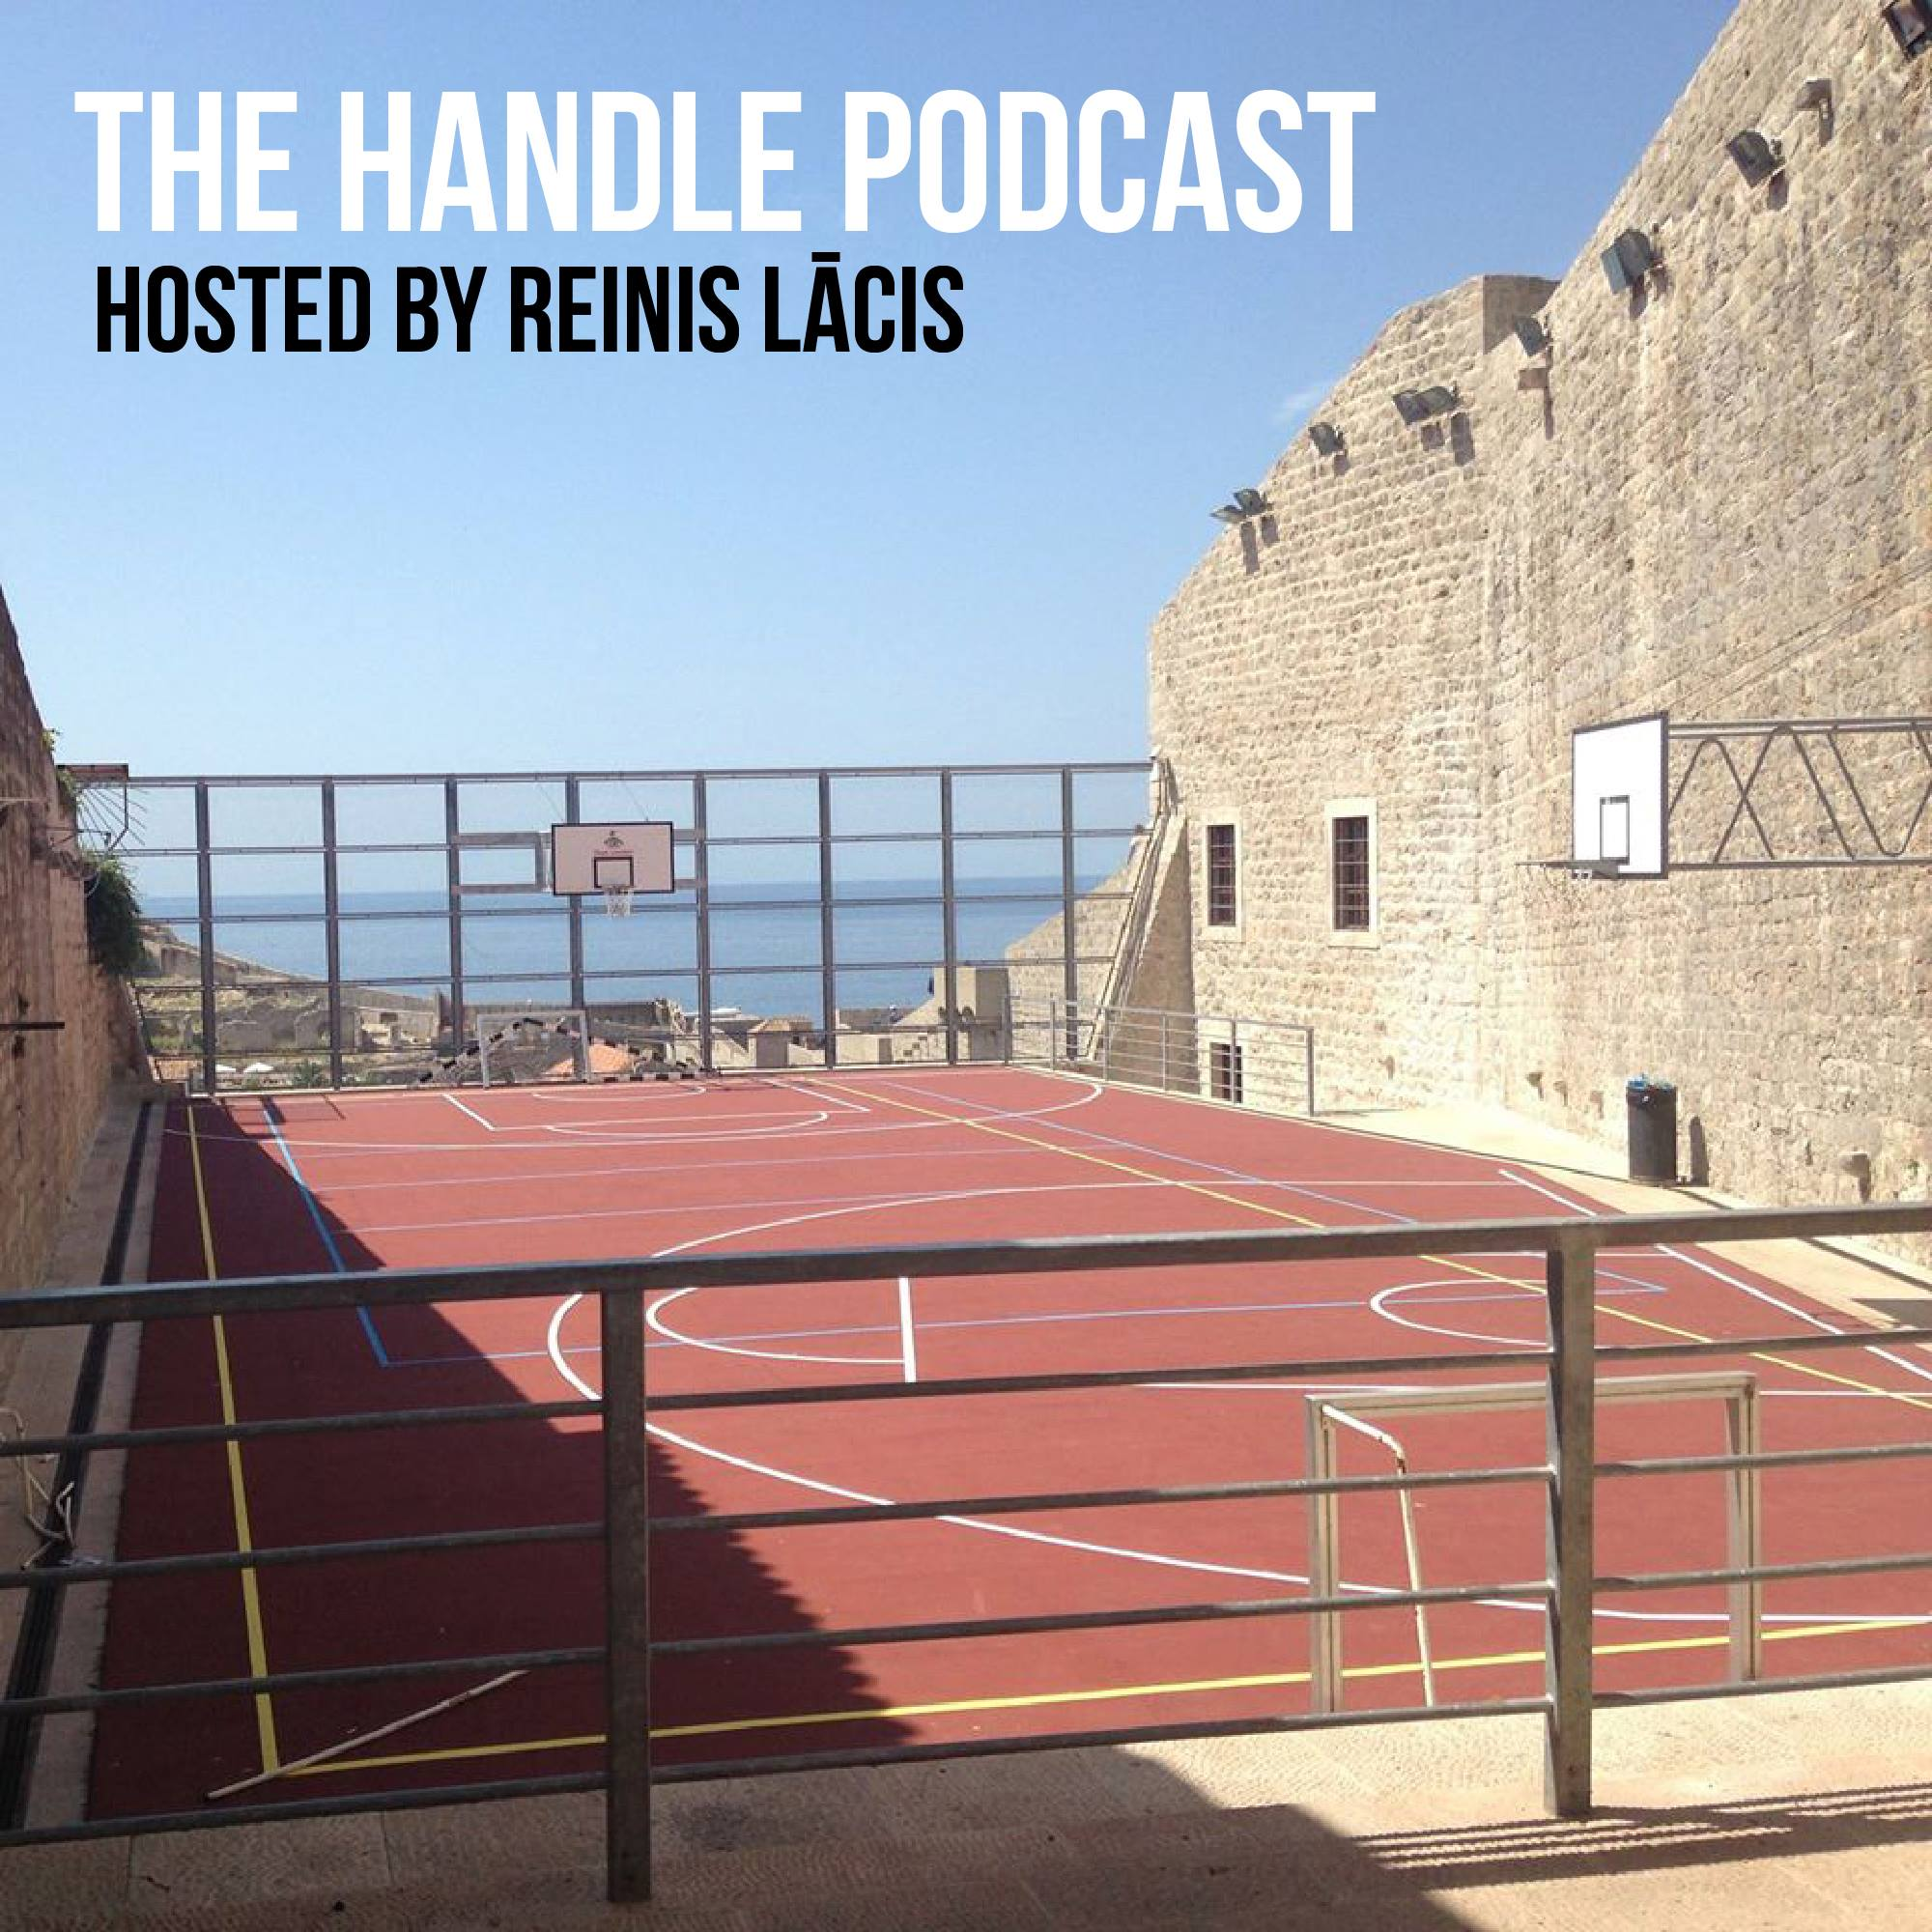 The Handle Podcast – Swen Nater 02 07 16